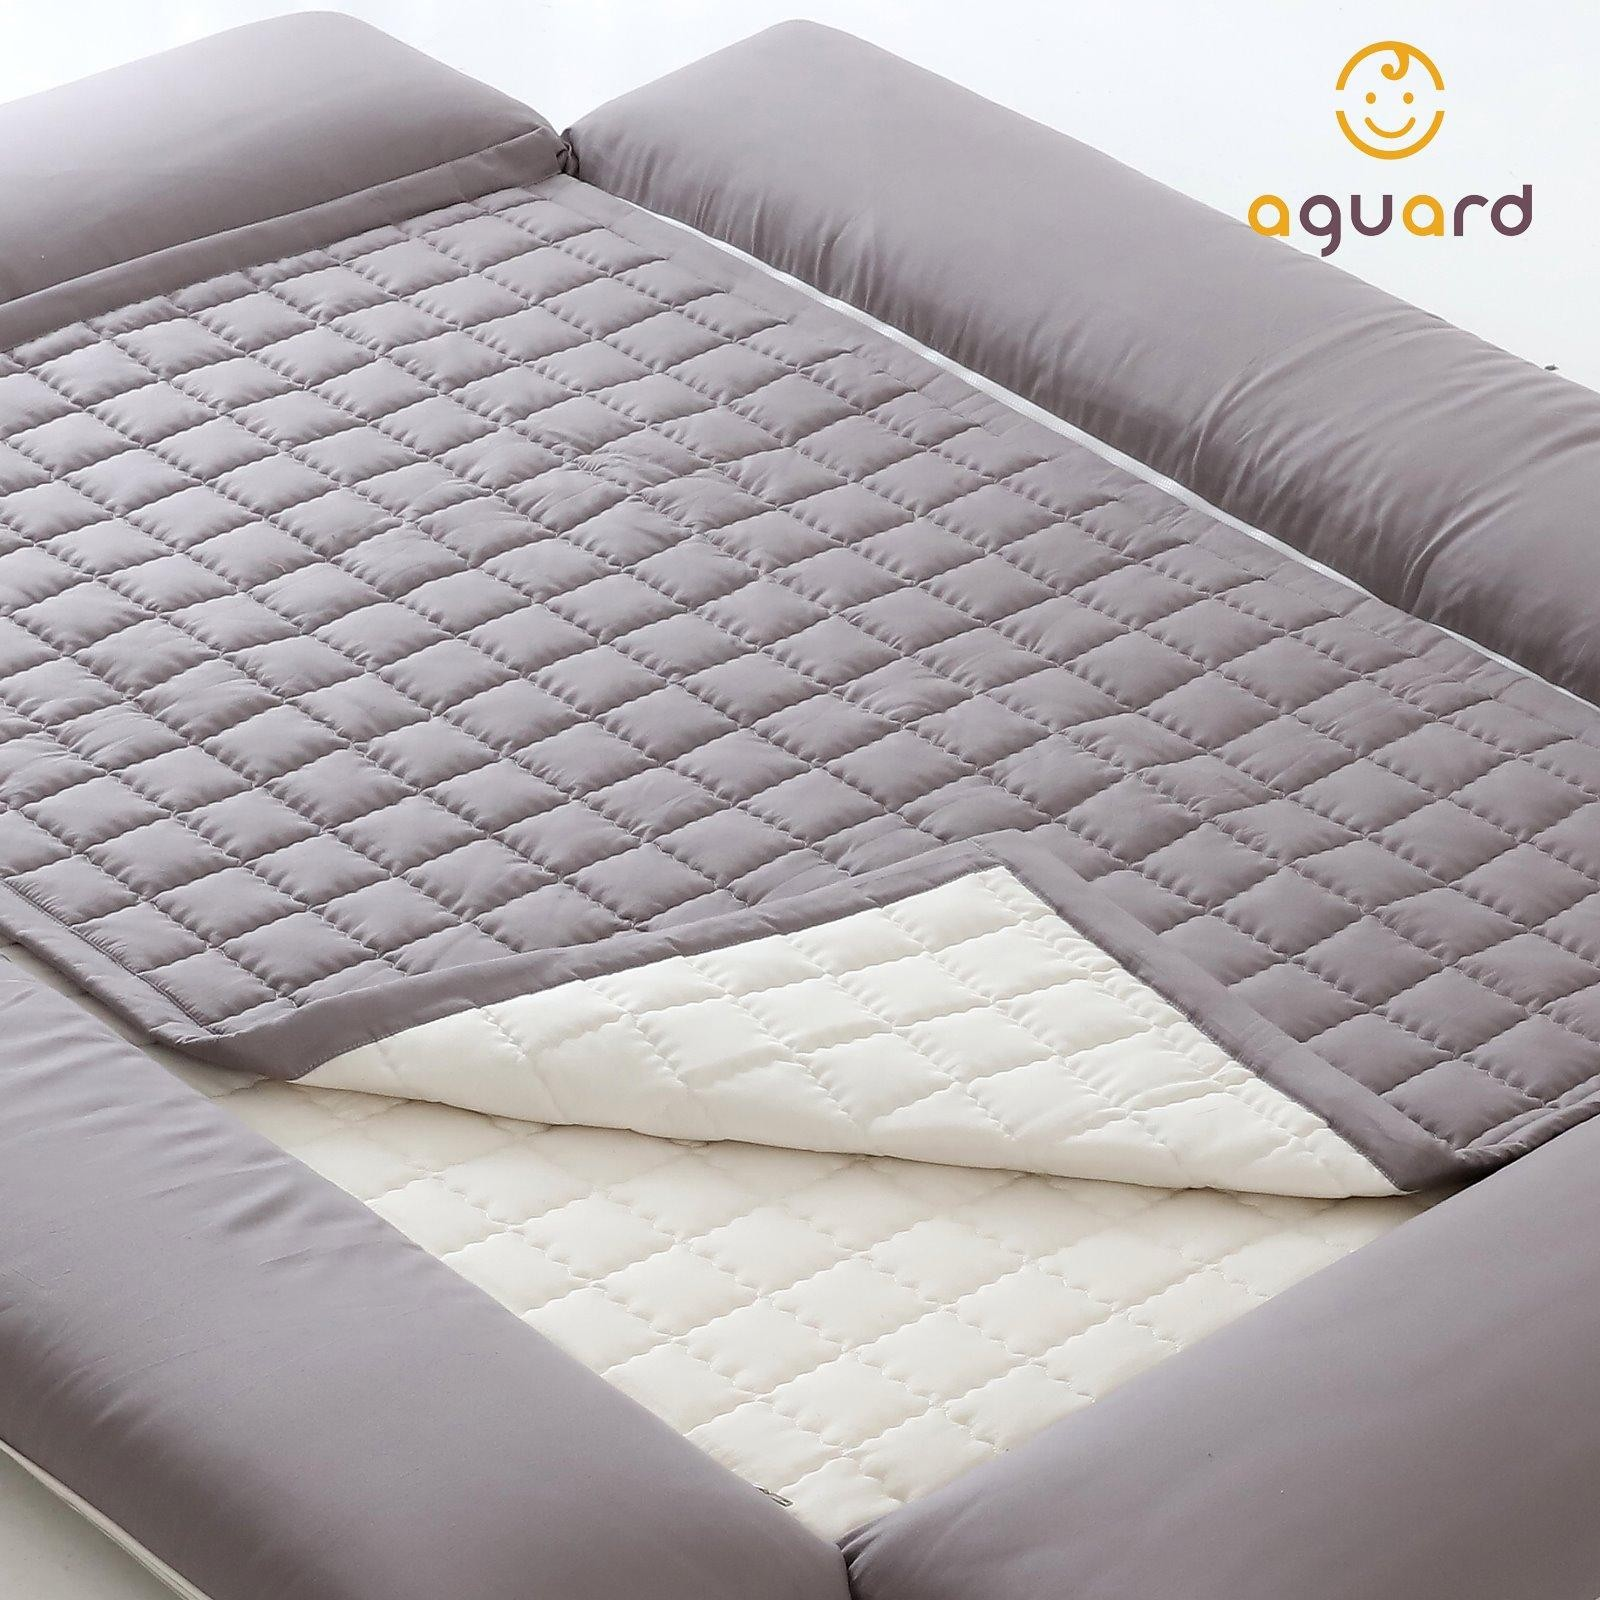 AGUARD Bumper Bed Waterproof Mattress Protector -